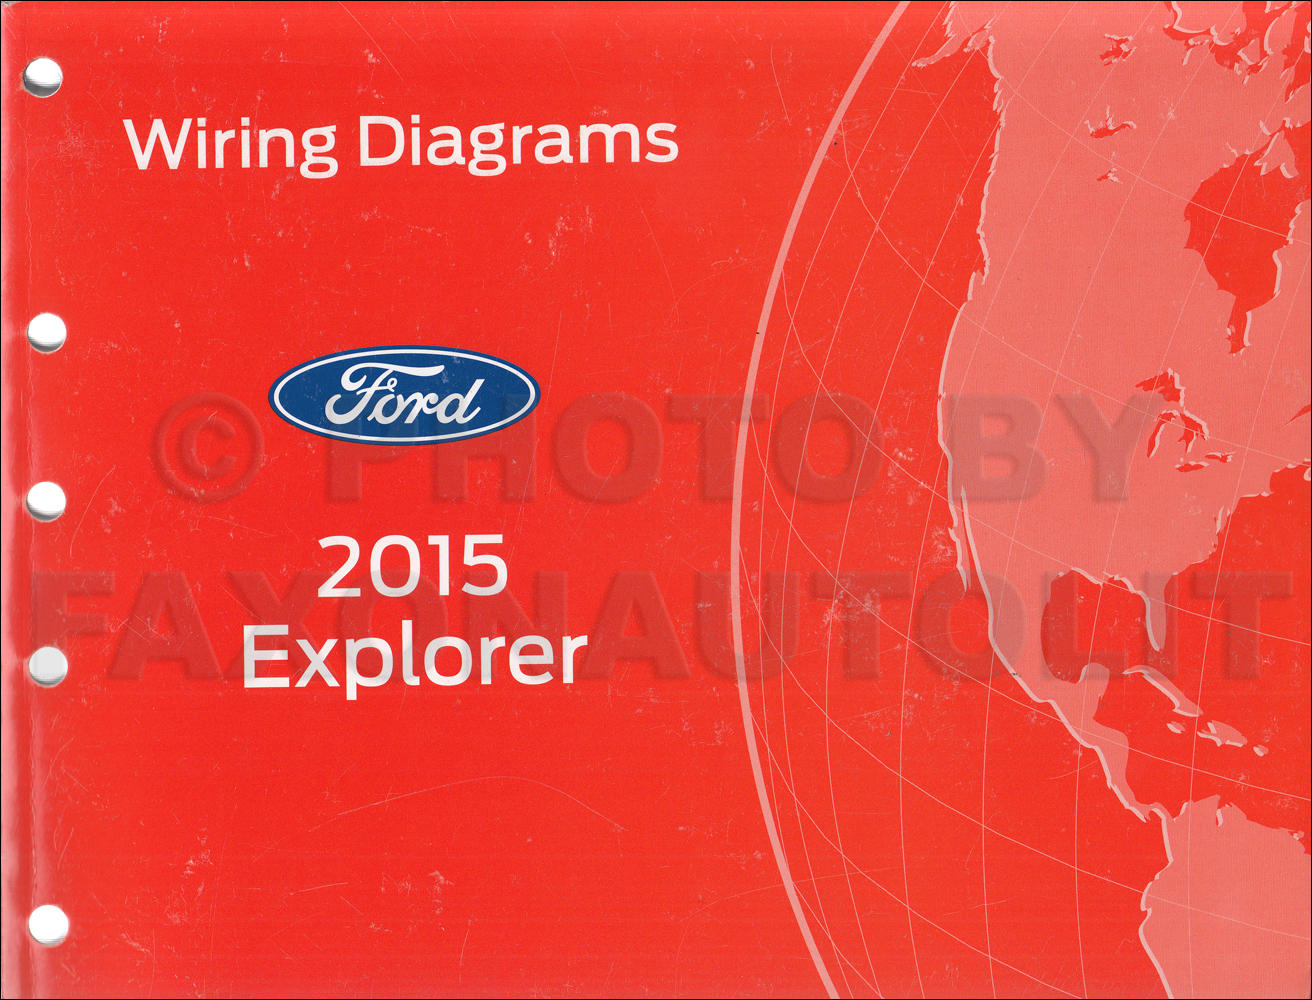 2015 ford explorer wiring diagrams 2015 ford explorer wiring diagram